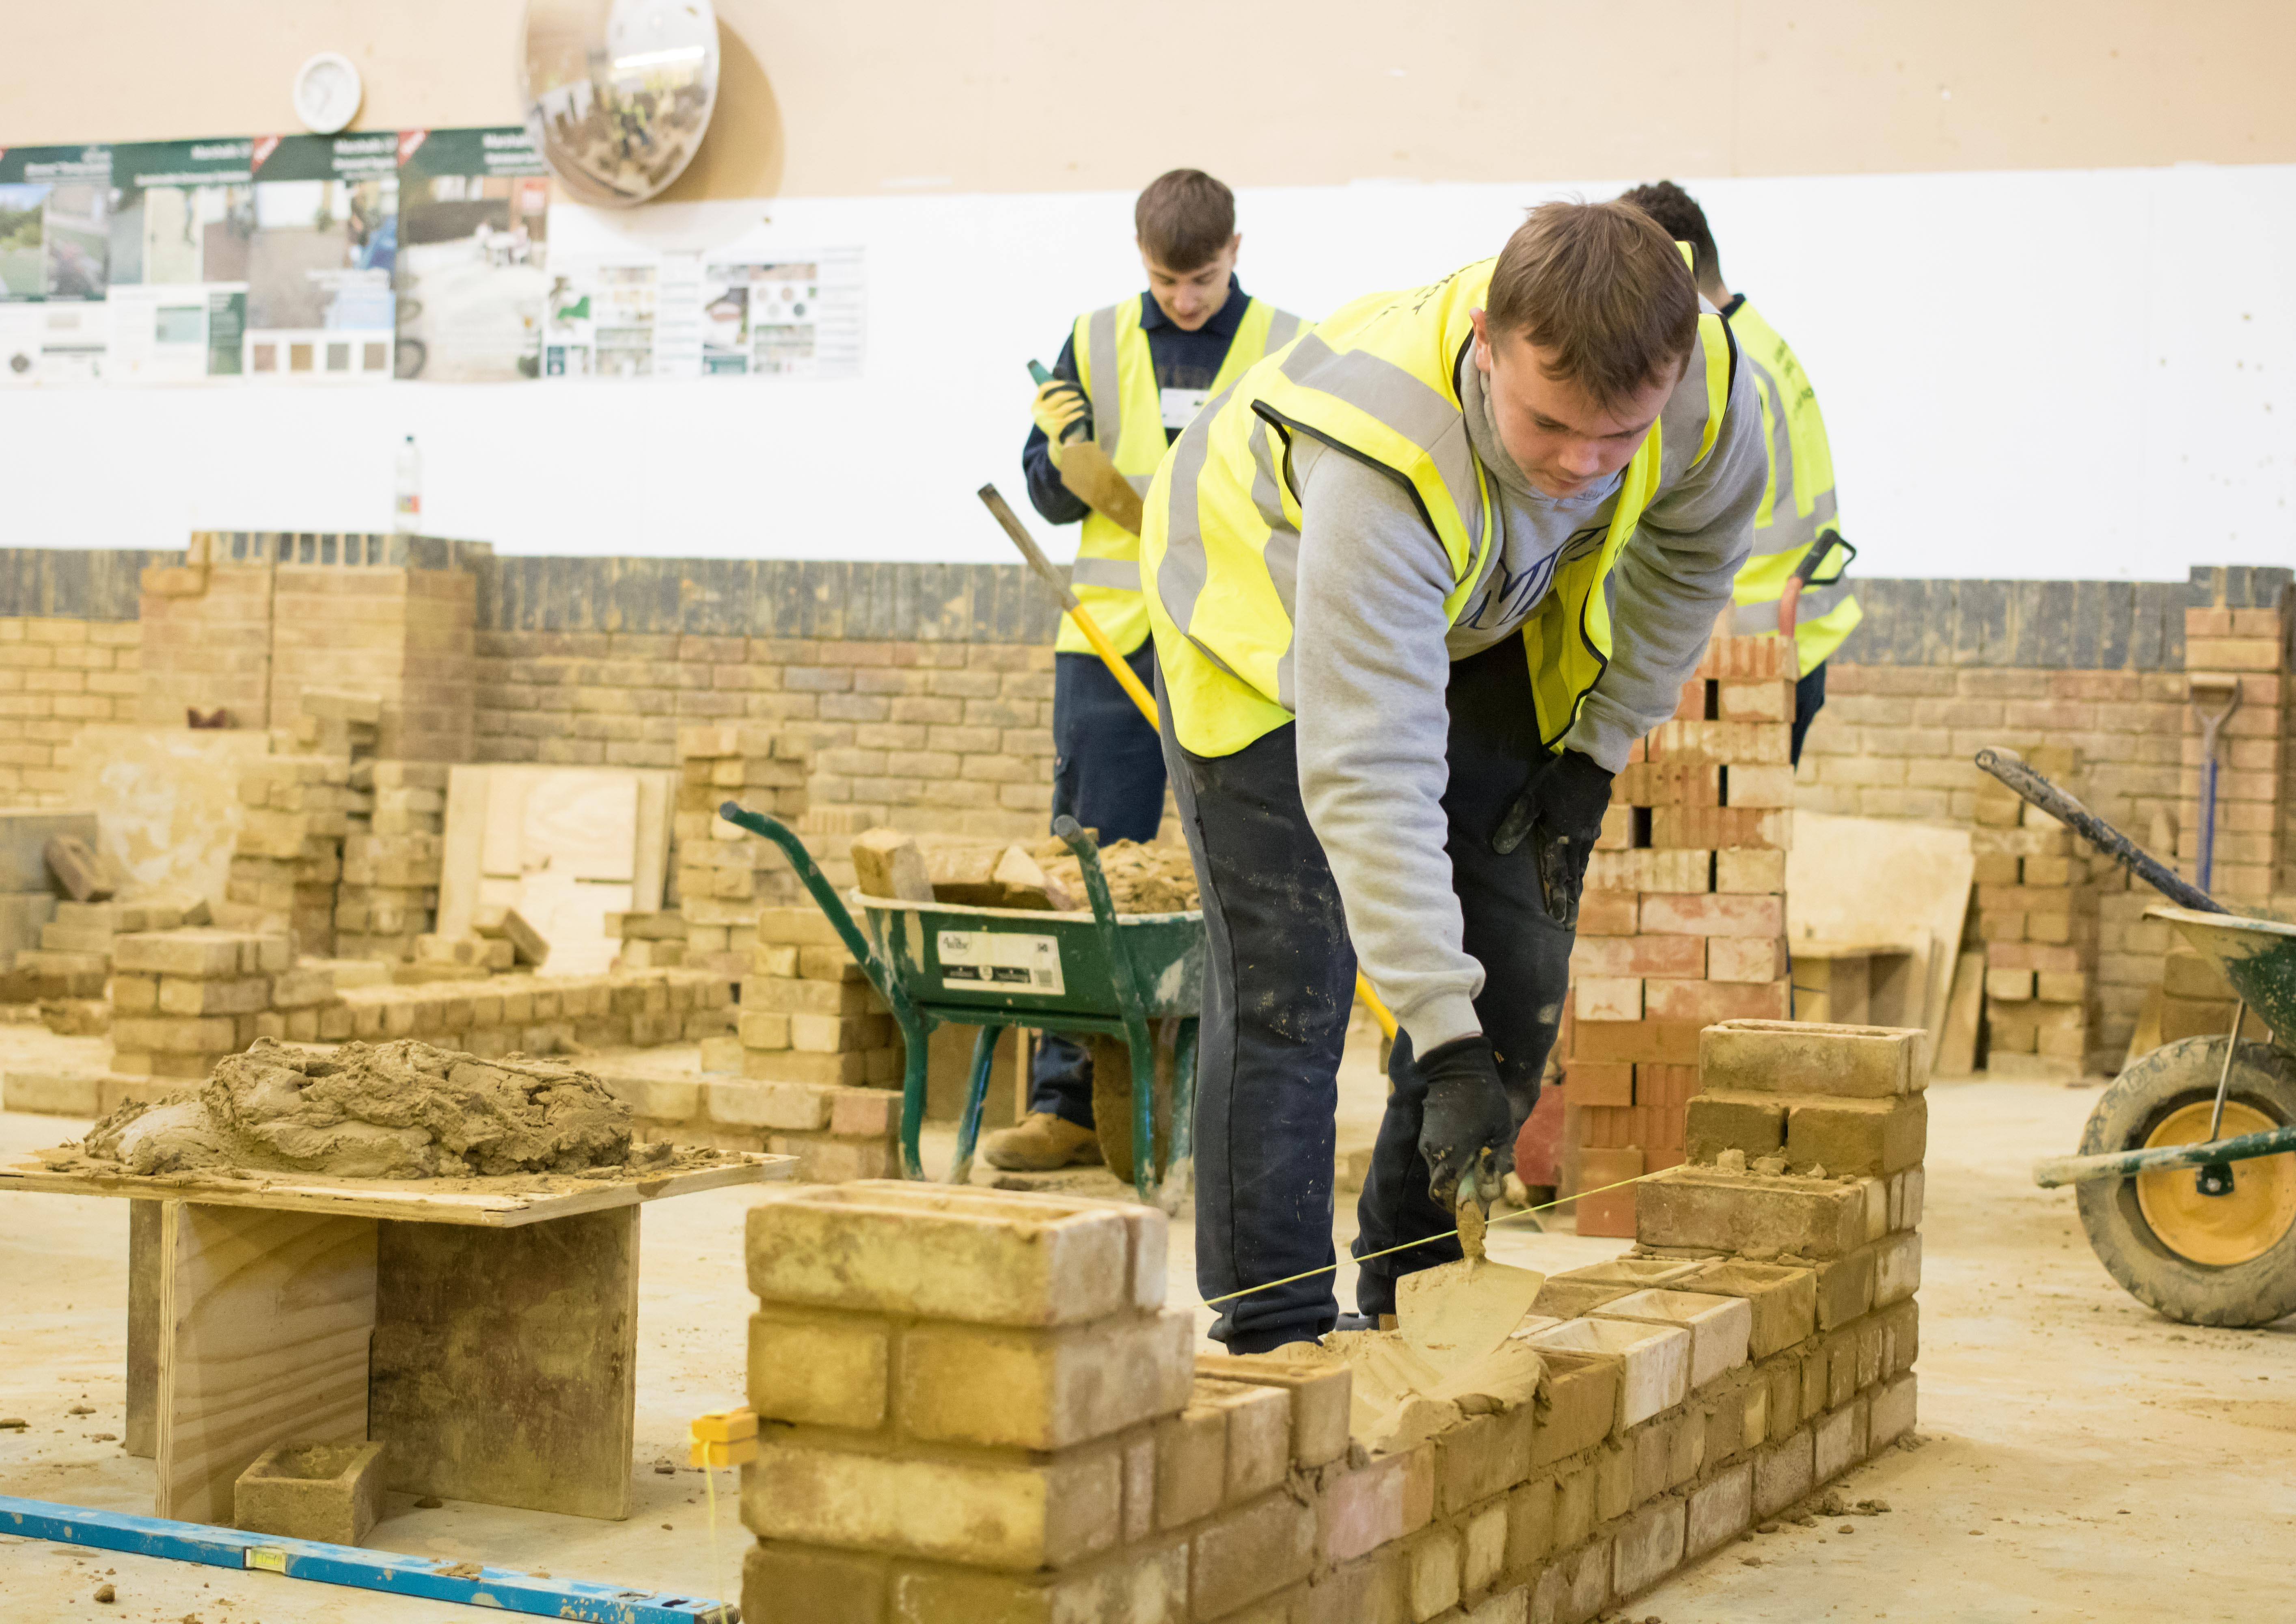 Student working in bricklaying workshop